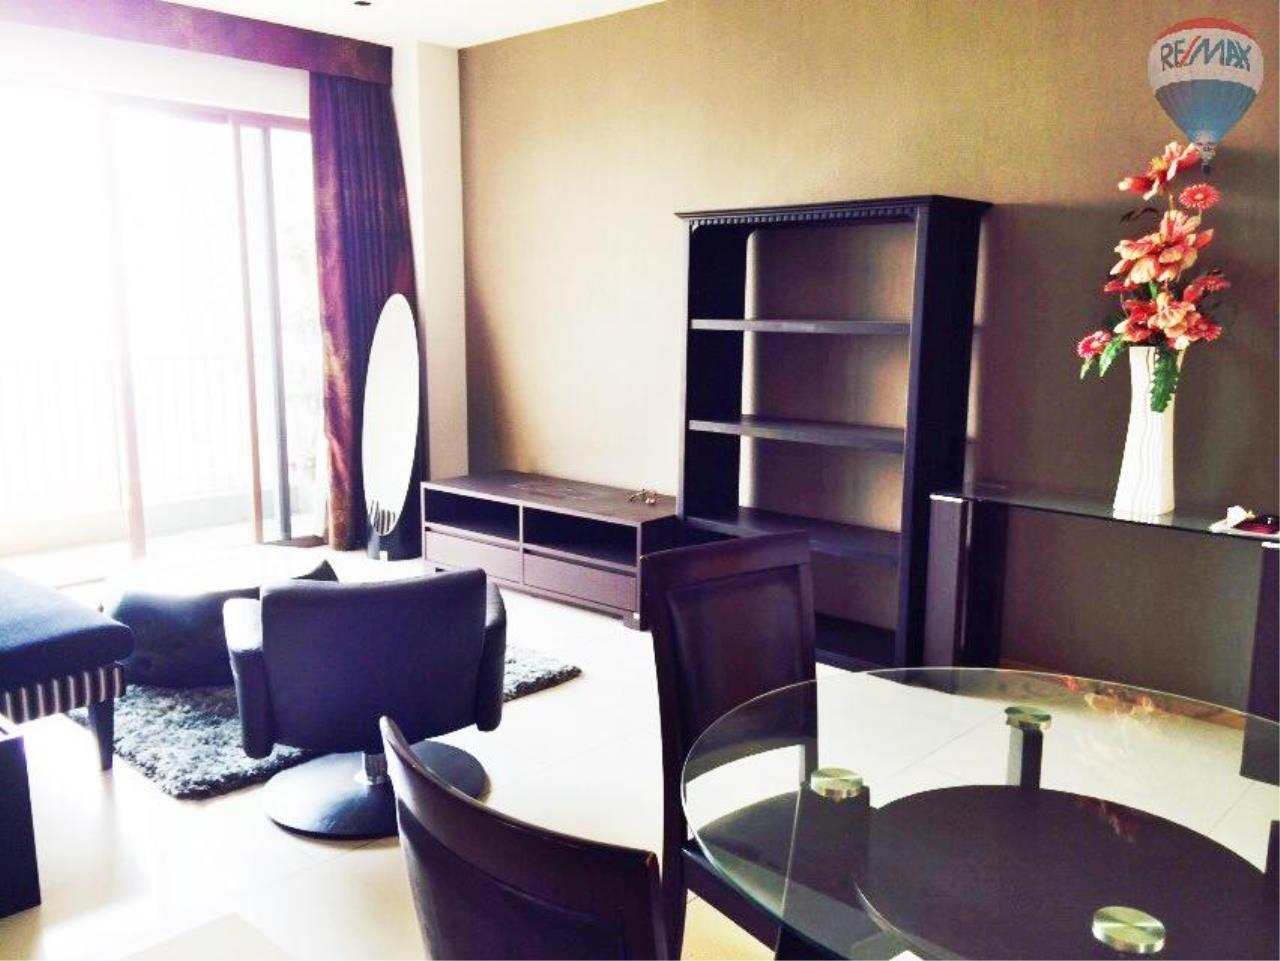 RE/MAX Properties Agency's Condominium for sale 1 bedroom 65 Sq.m. at Emporio Place 4